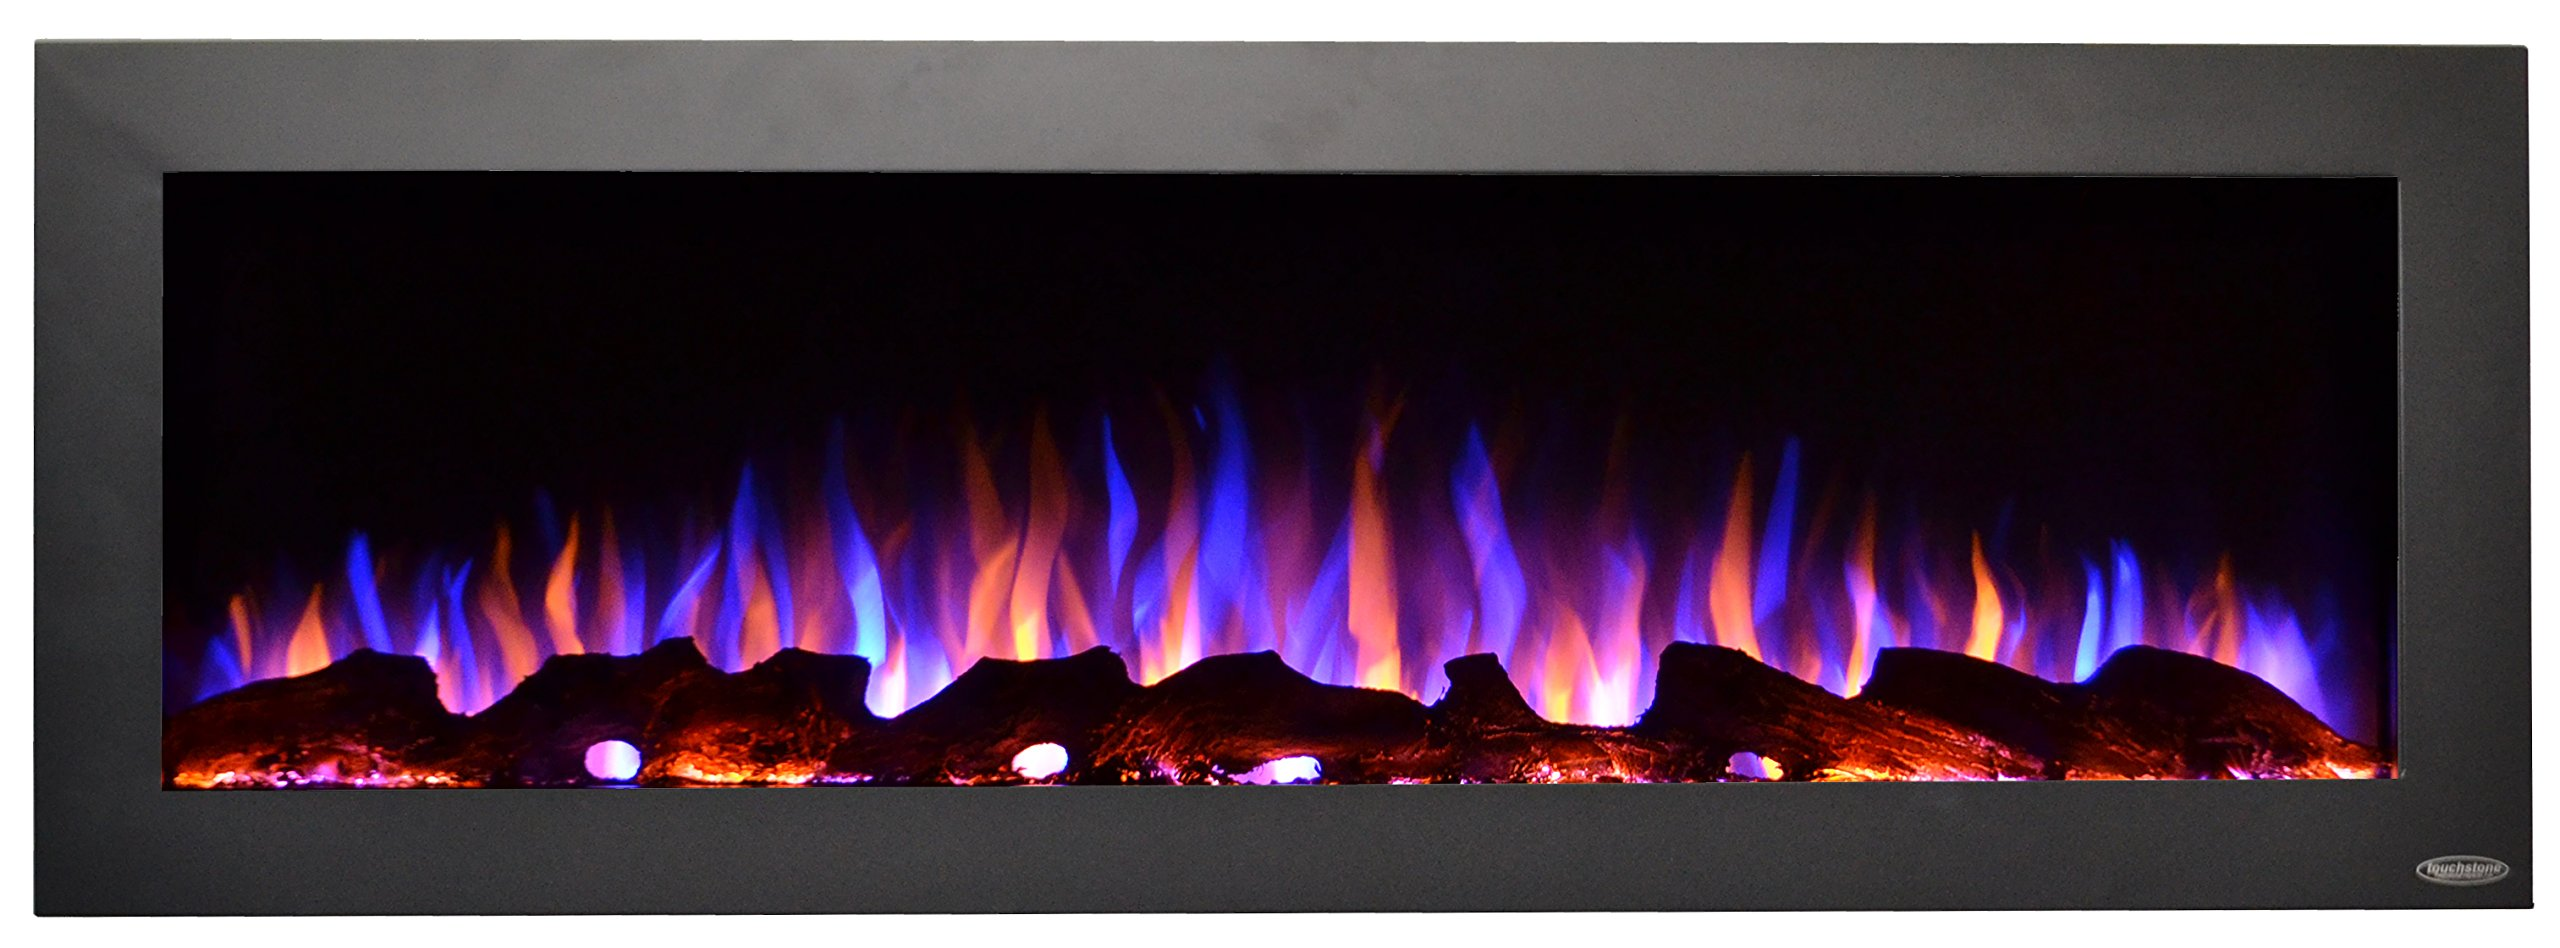 Touchstone 80017 - Indoor/Outdoor Sideline Electric Fireplace - GFI Plug for Outdoor Use - 50 Inch Wide - in Wall Recessed or Wall Mount - Realistic 3 Color Flame - No Heat - (Black) - Log & Crystal by Touchstone